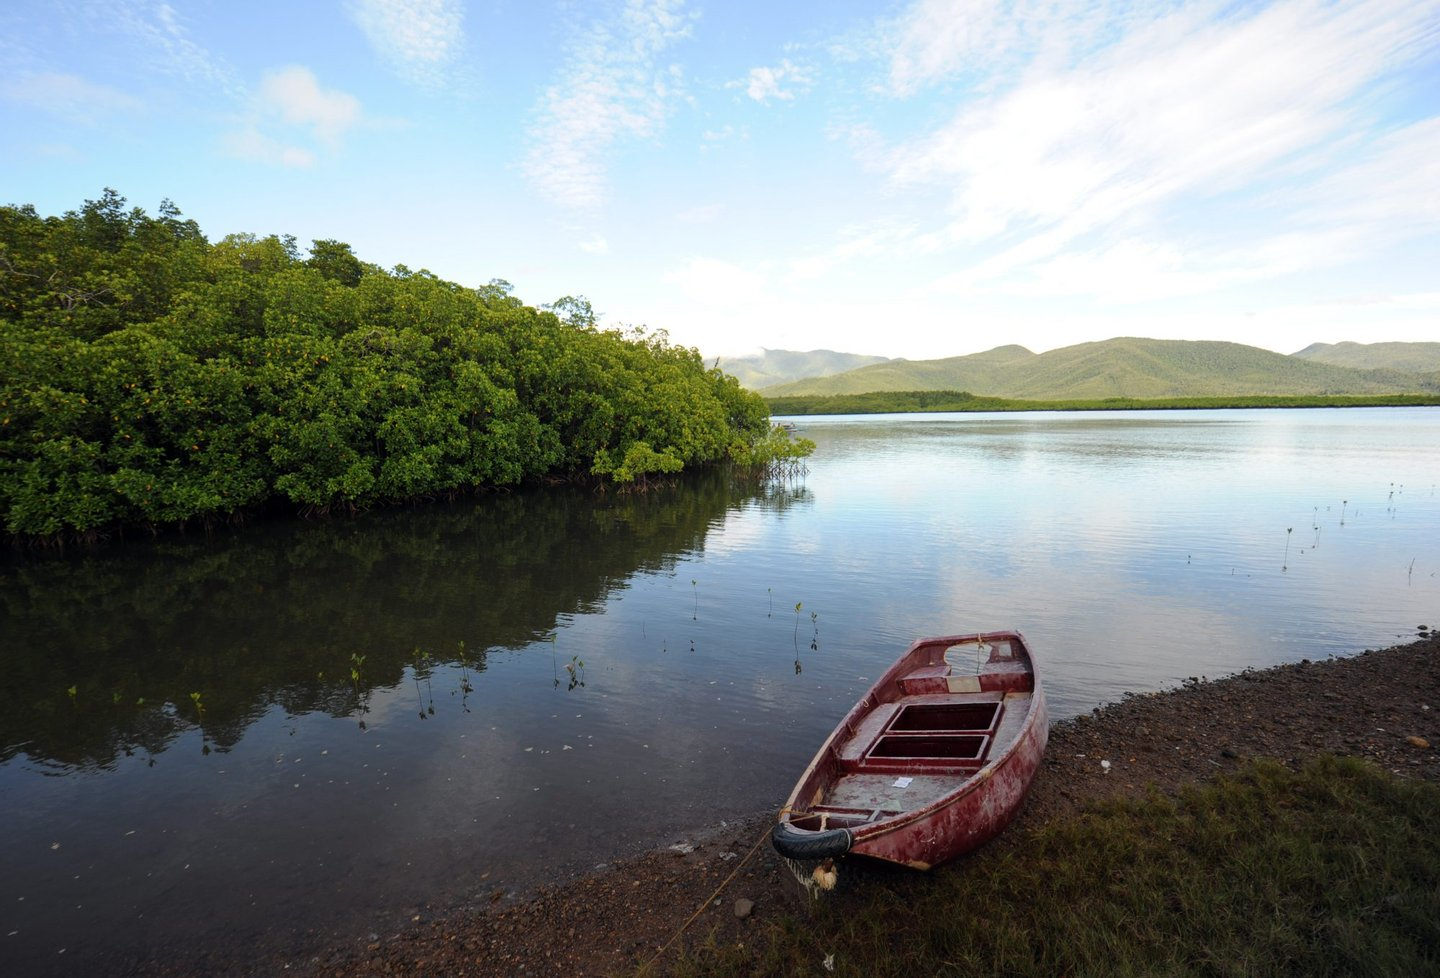 A boat sits anchored next to mangrove trees at Ulugan Bay in Puerto Princesa, Palawan island, south of Manila on April 25, 2012. AFP PHOTO/TED ALJIBE (Photo credit should read TED ALJIBE/AFP/GettyImages)